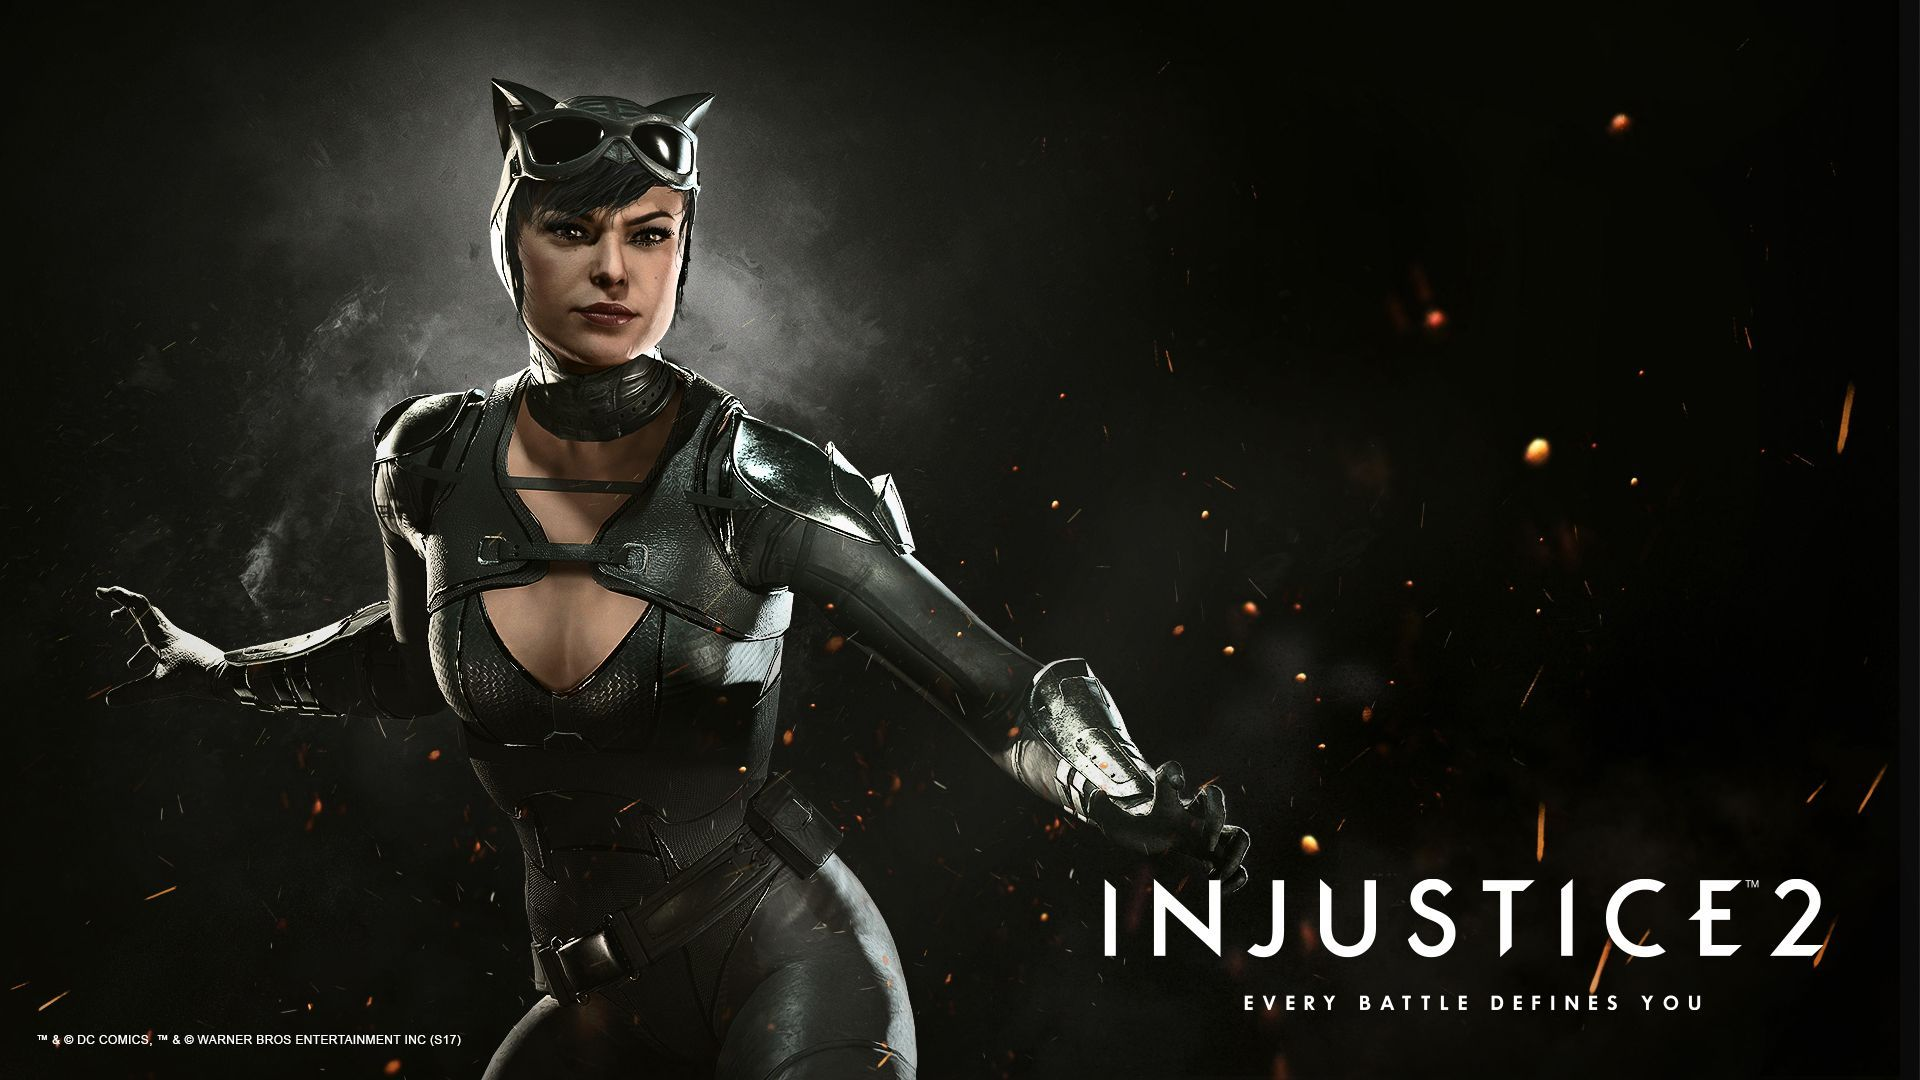 Injustice 2 Game Injustice 2 Characters Injustice 2